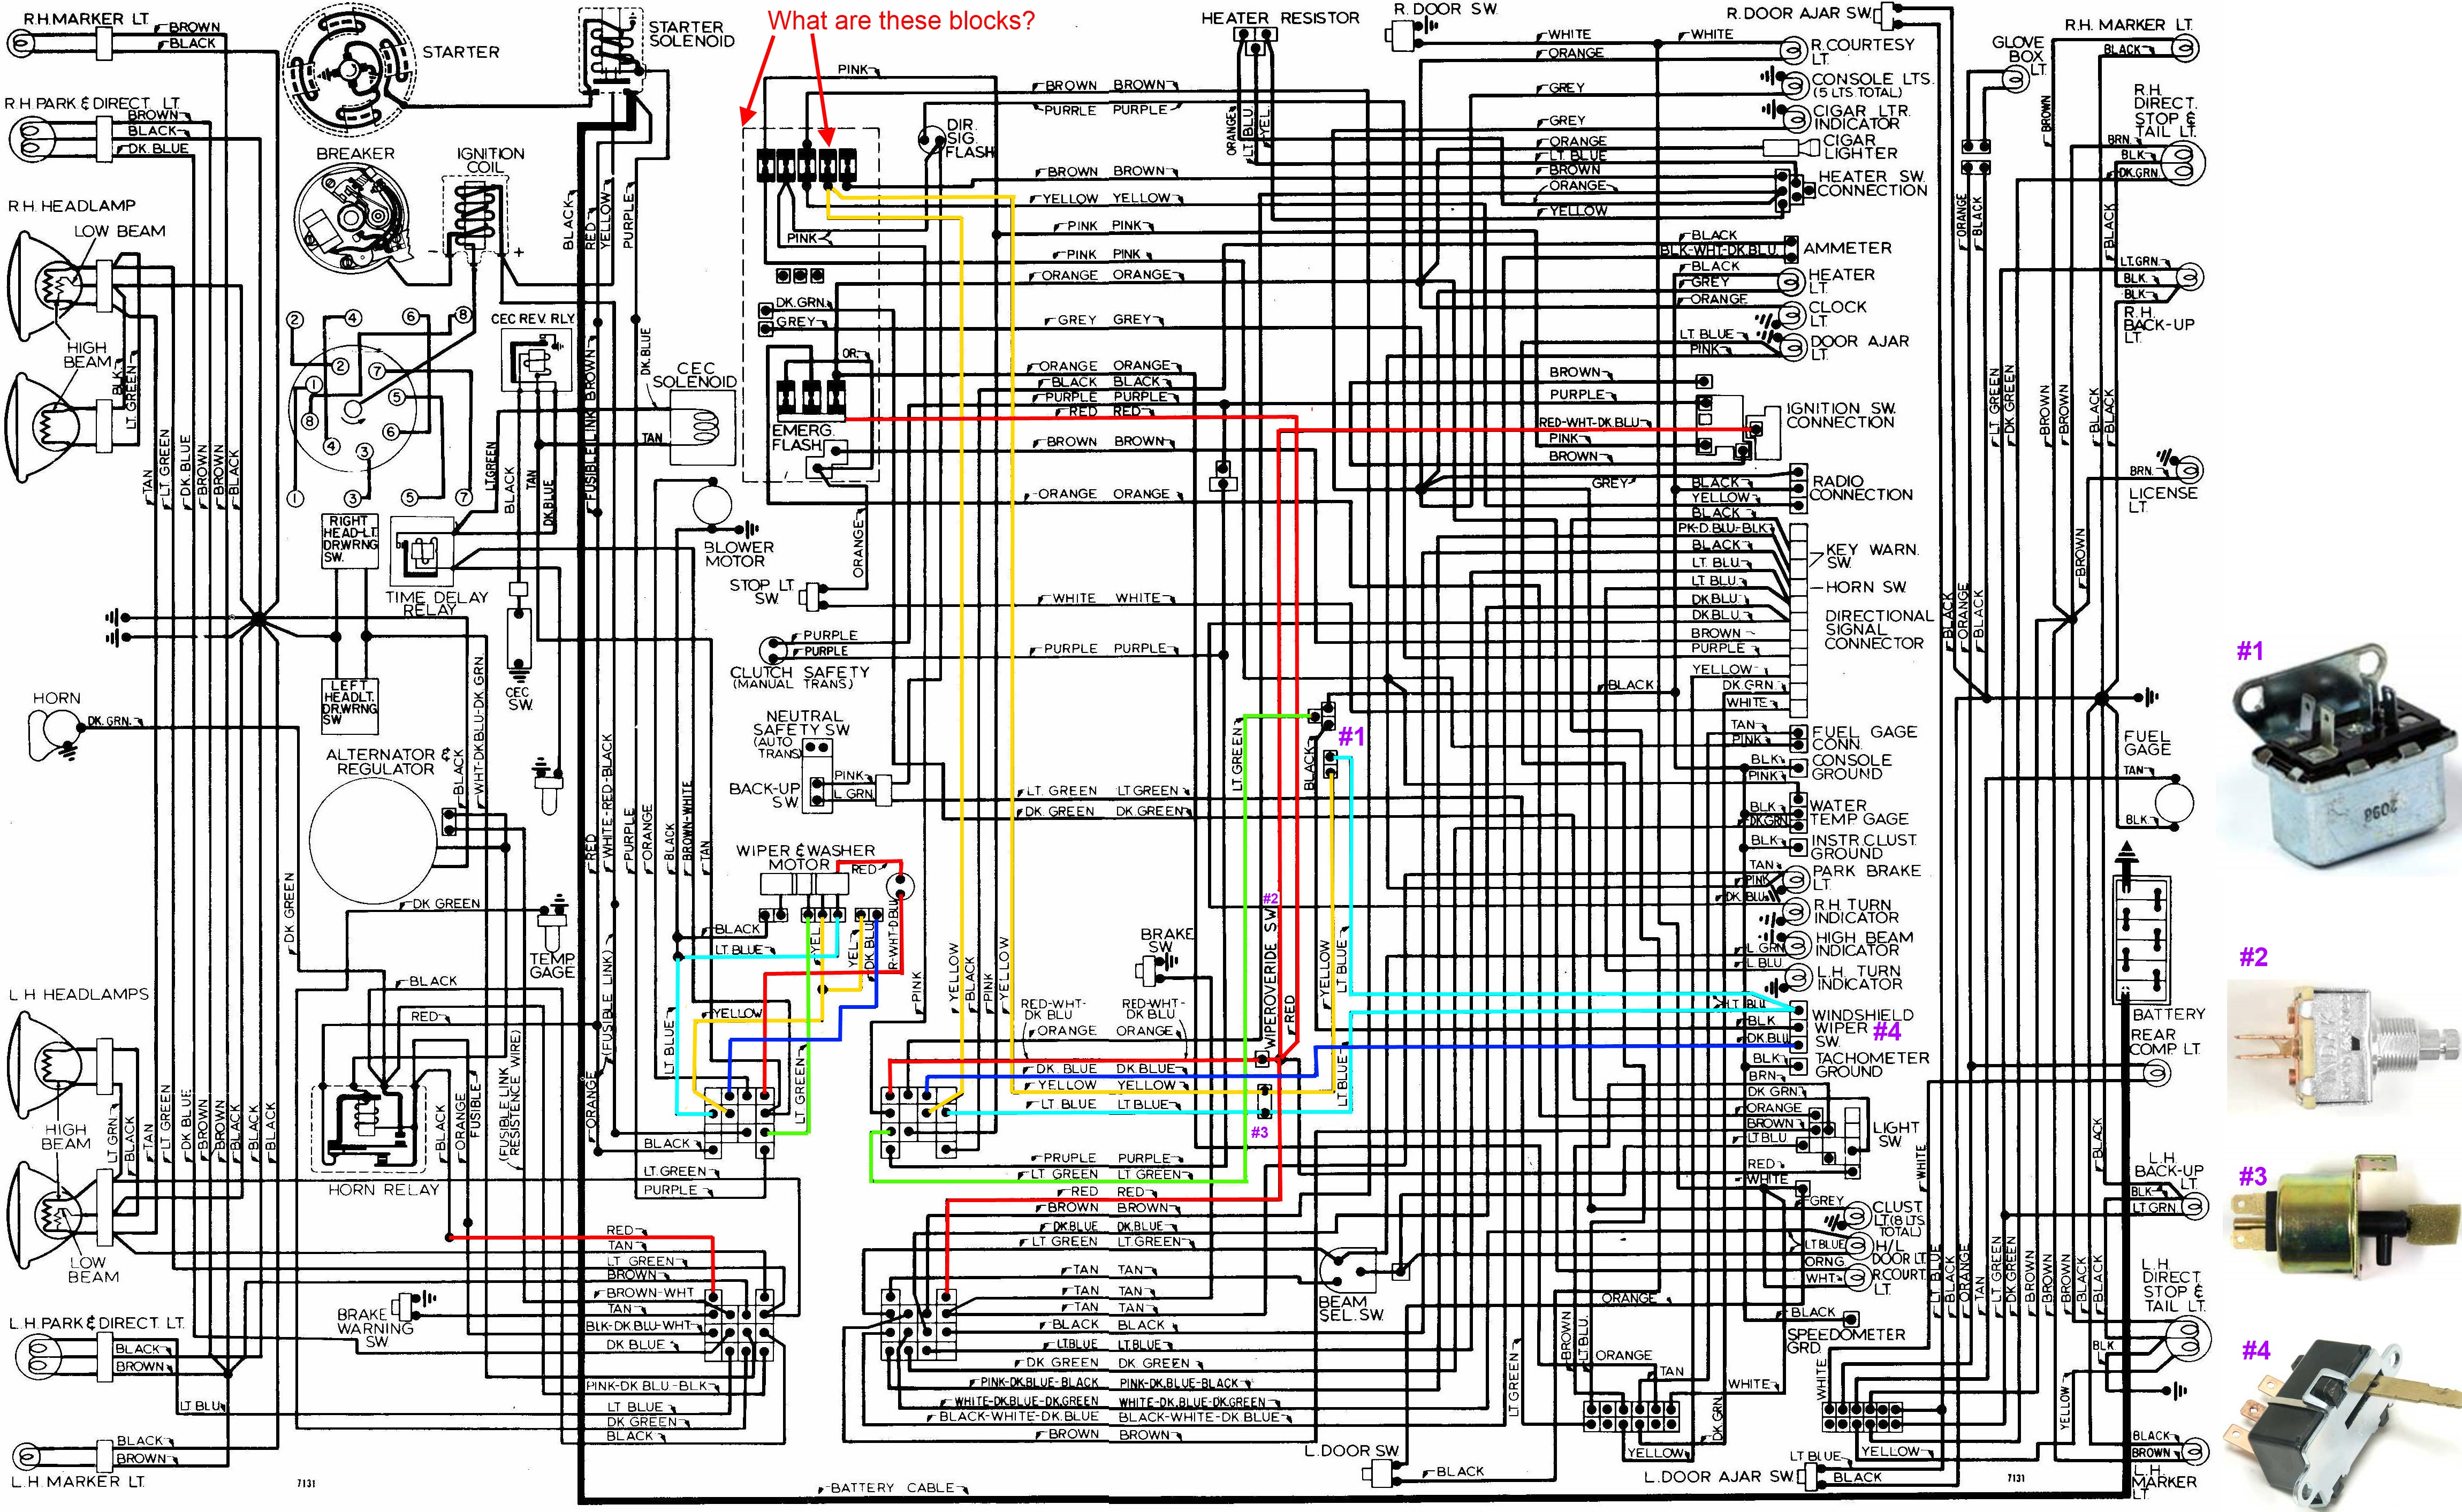 47909232d1440002576 starter wiring part 2 help 1971 wiring dia 20chevrolet 20corvette 20wiring 20question 20for 20wipers?quality=80&strip=all 1981 corvette horn diagram wiring schematic horn download 1981 Corvette Rear End Diagrams at gsmx.co